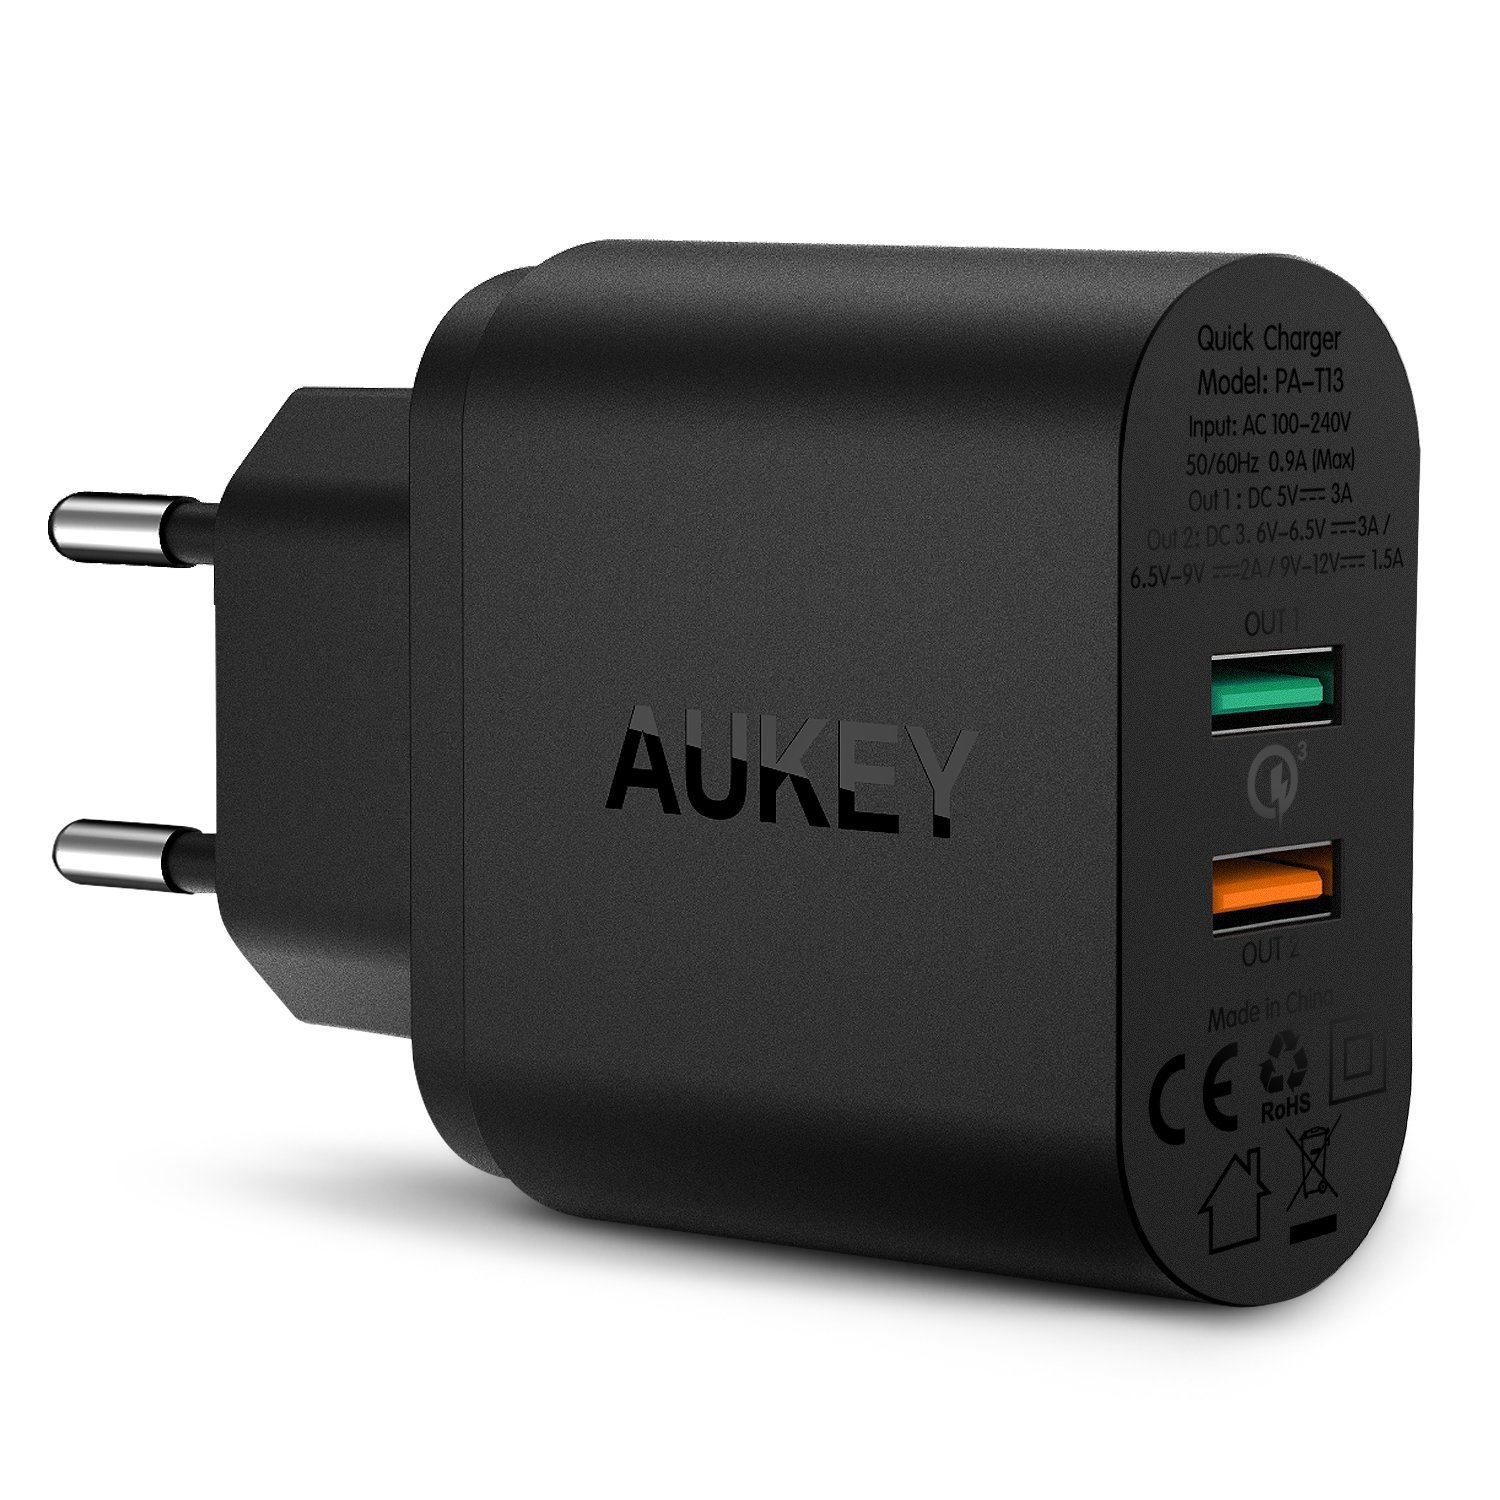 PA-T13 Dual Port Wall Charger  with Quick Charge 3.0